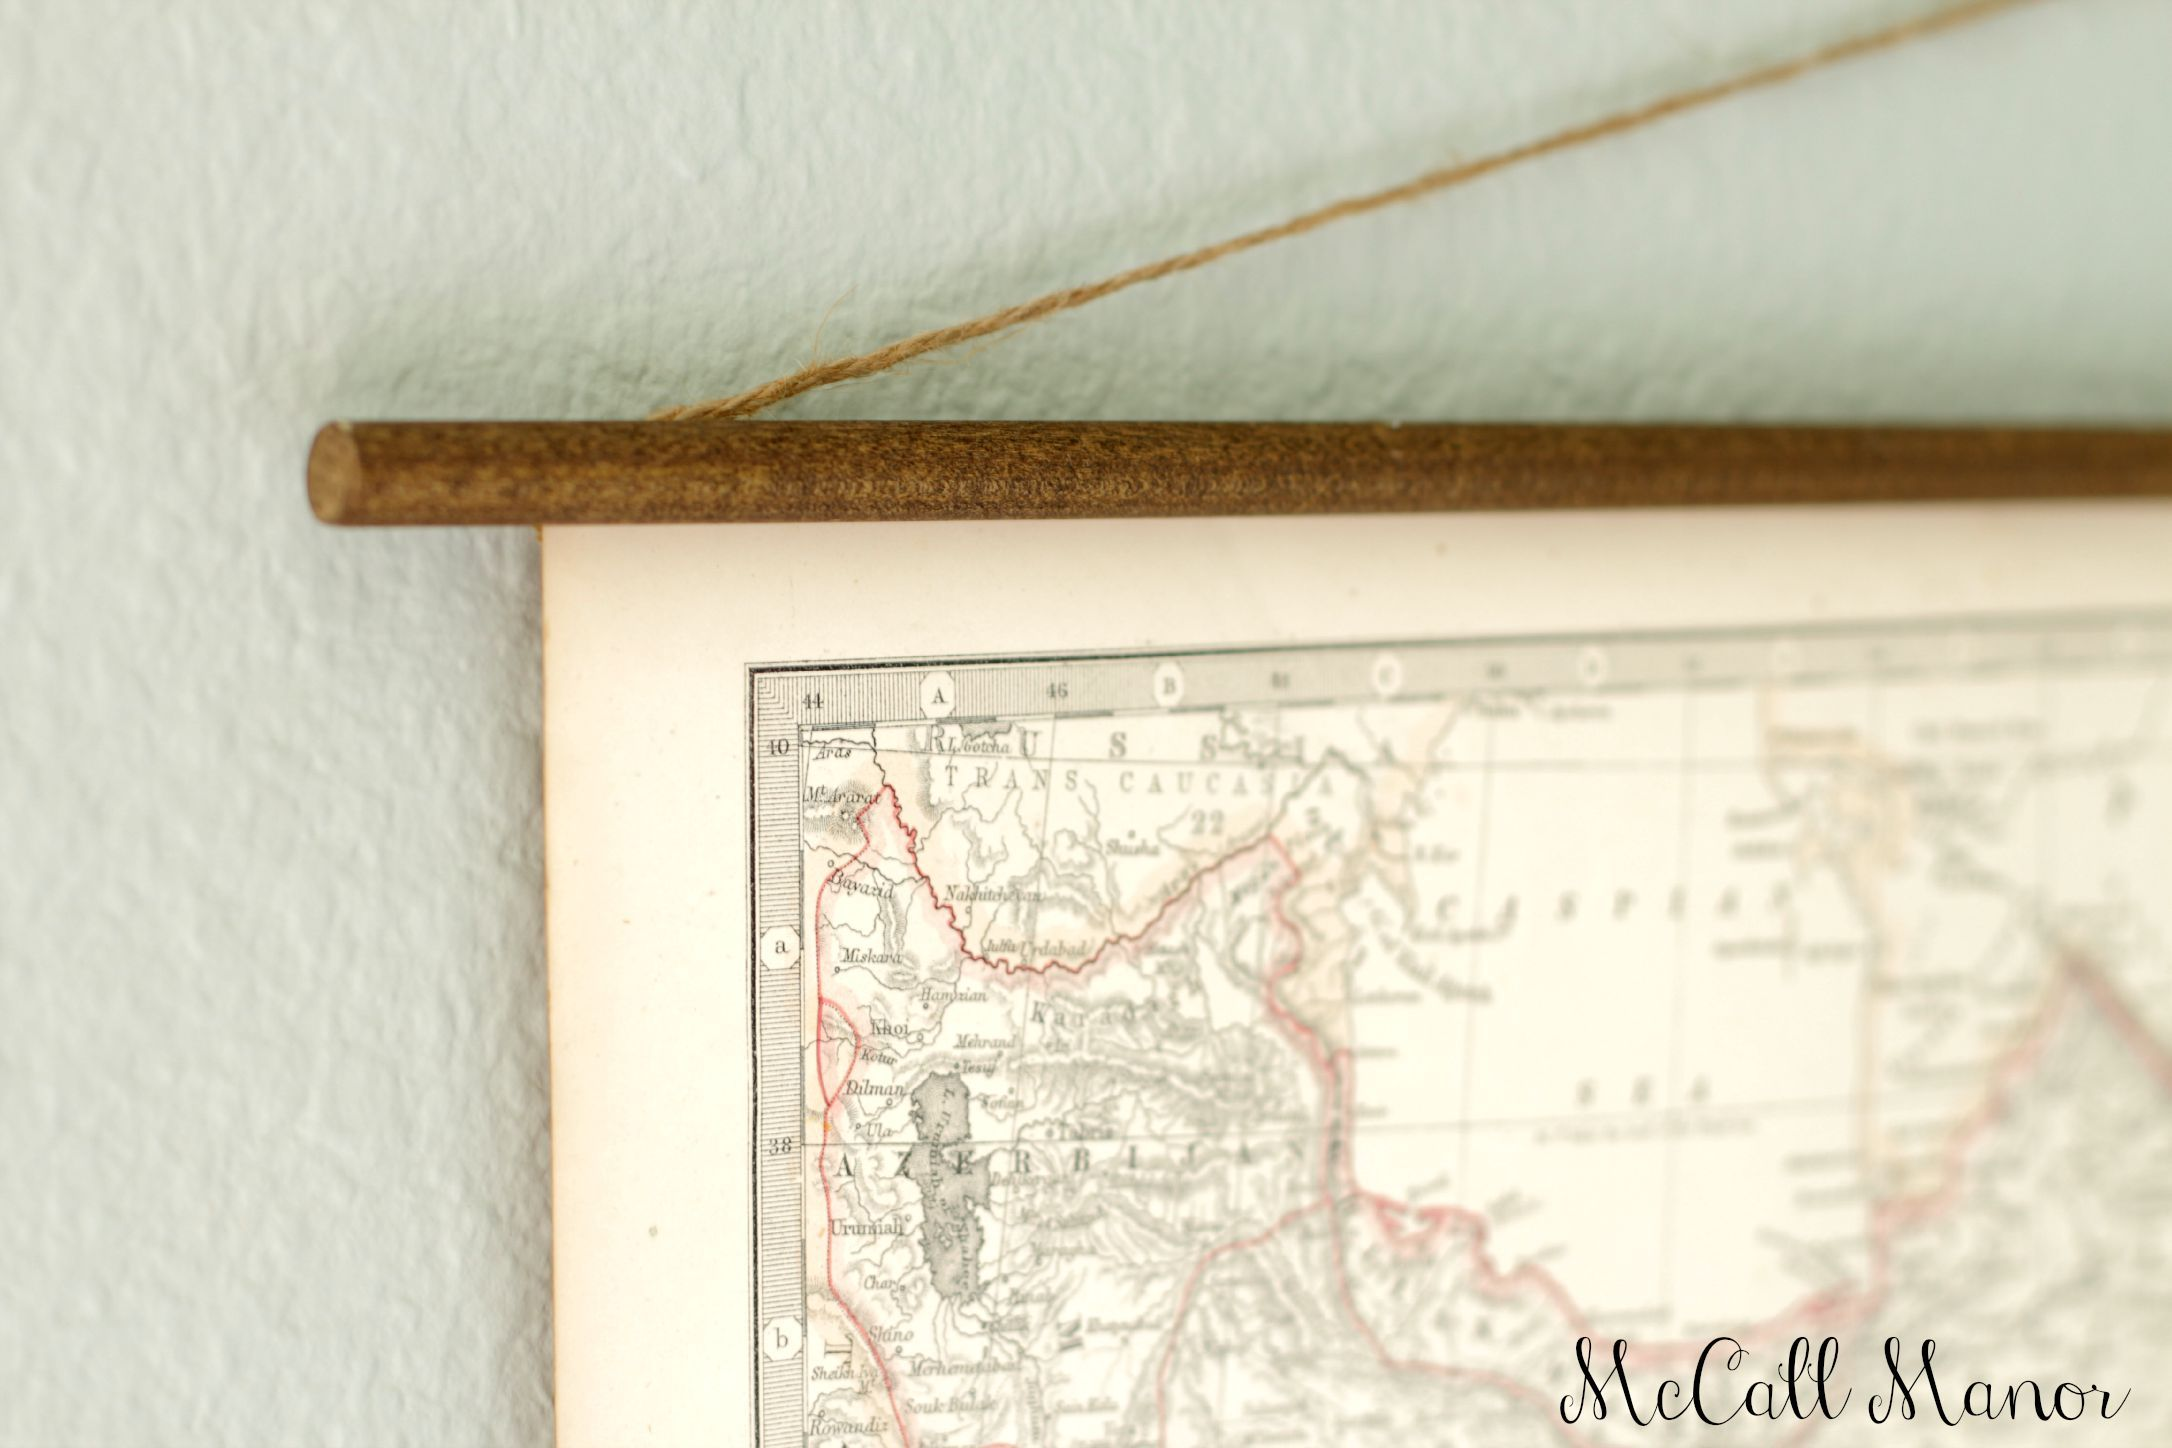 How to hang old maps - McCall Manor | Farmhouse decor in ... Map Hanger on map mirror, map scrapbook, map plastic, map hwy 224 clackamas 32nd, map chair, map of downtown denver rtd, map bag, map accessories, map skirt,